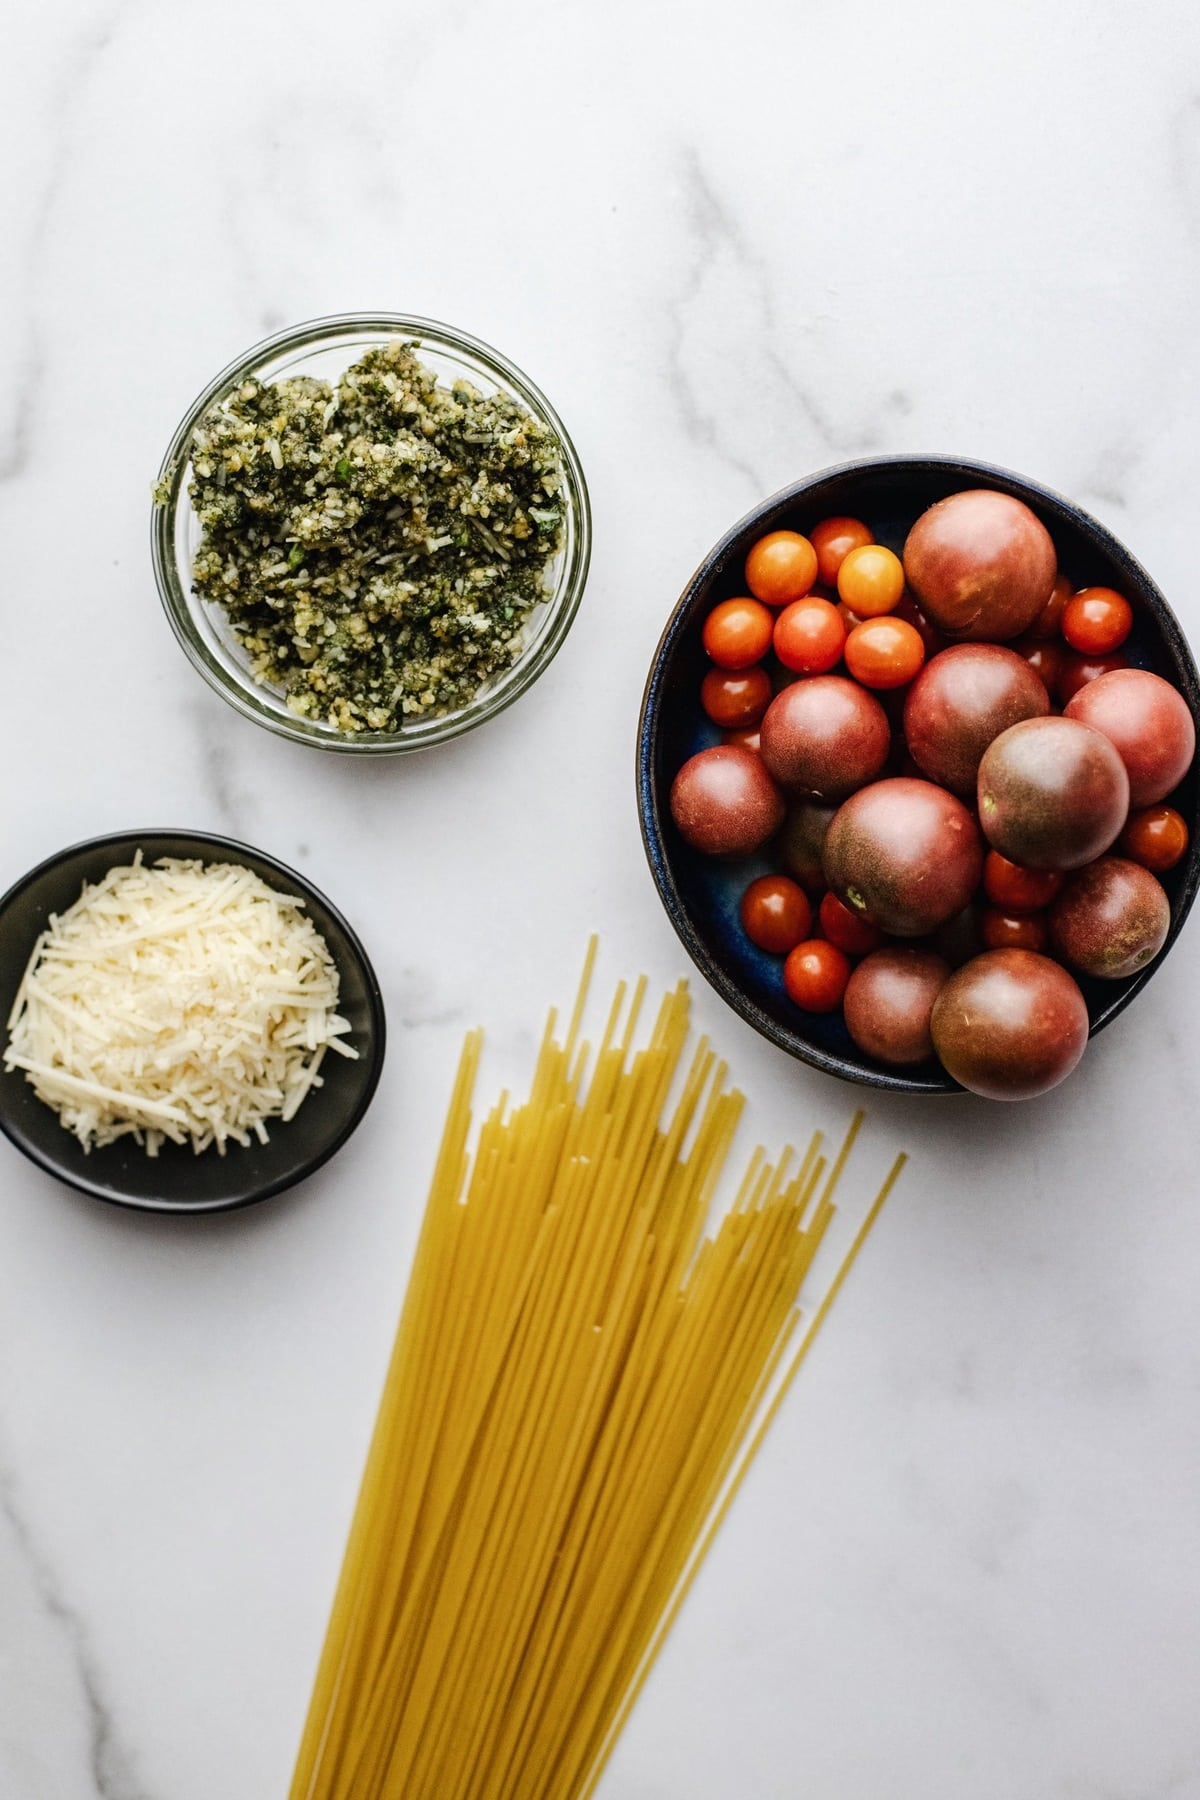 Ingredients for spaghetti pesto arranged on a white counter.